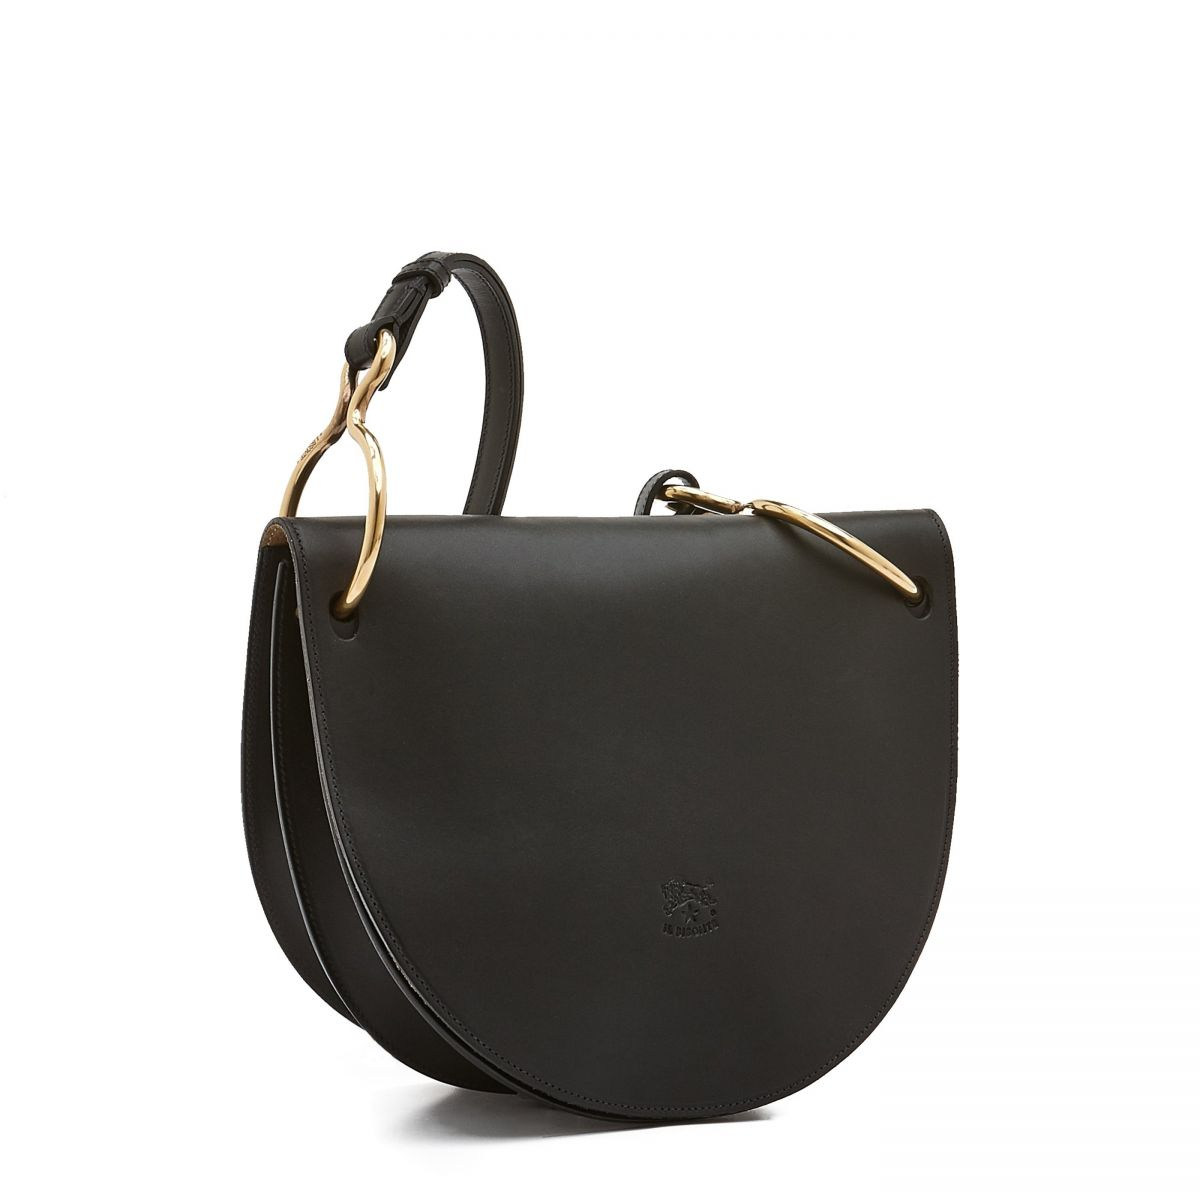 Women's Crossbody Bag Consuelo in Cowhide Leather BCR193 color Black | Details